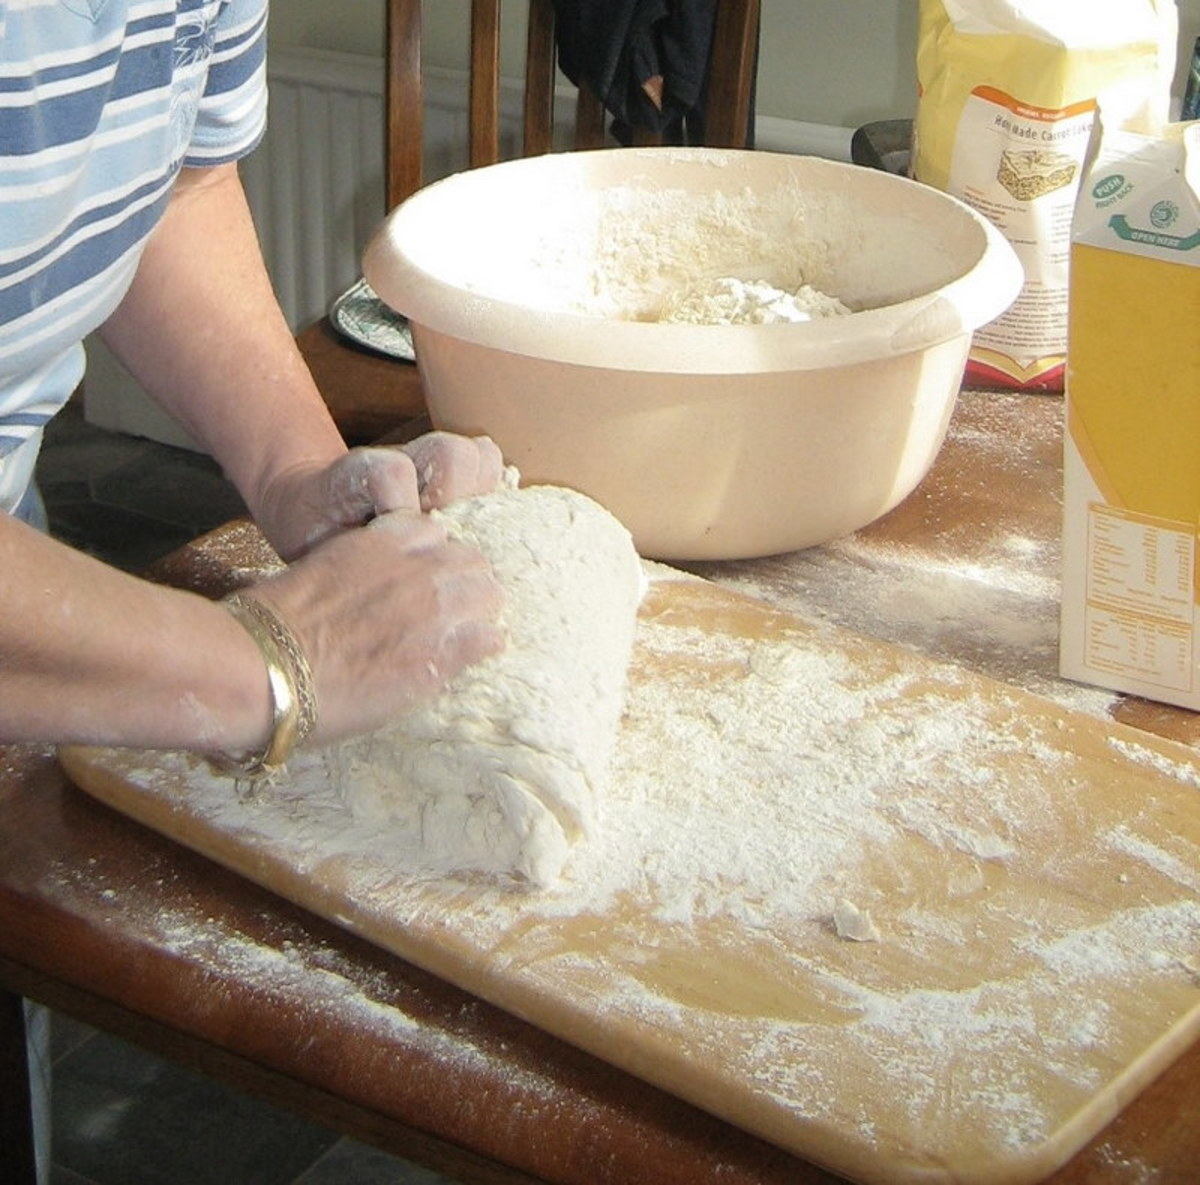 Lightly knead the dough for about one minute.